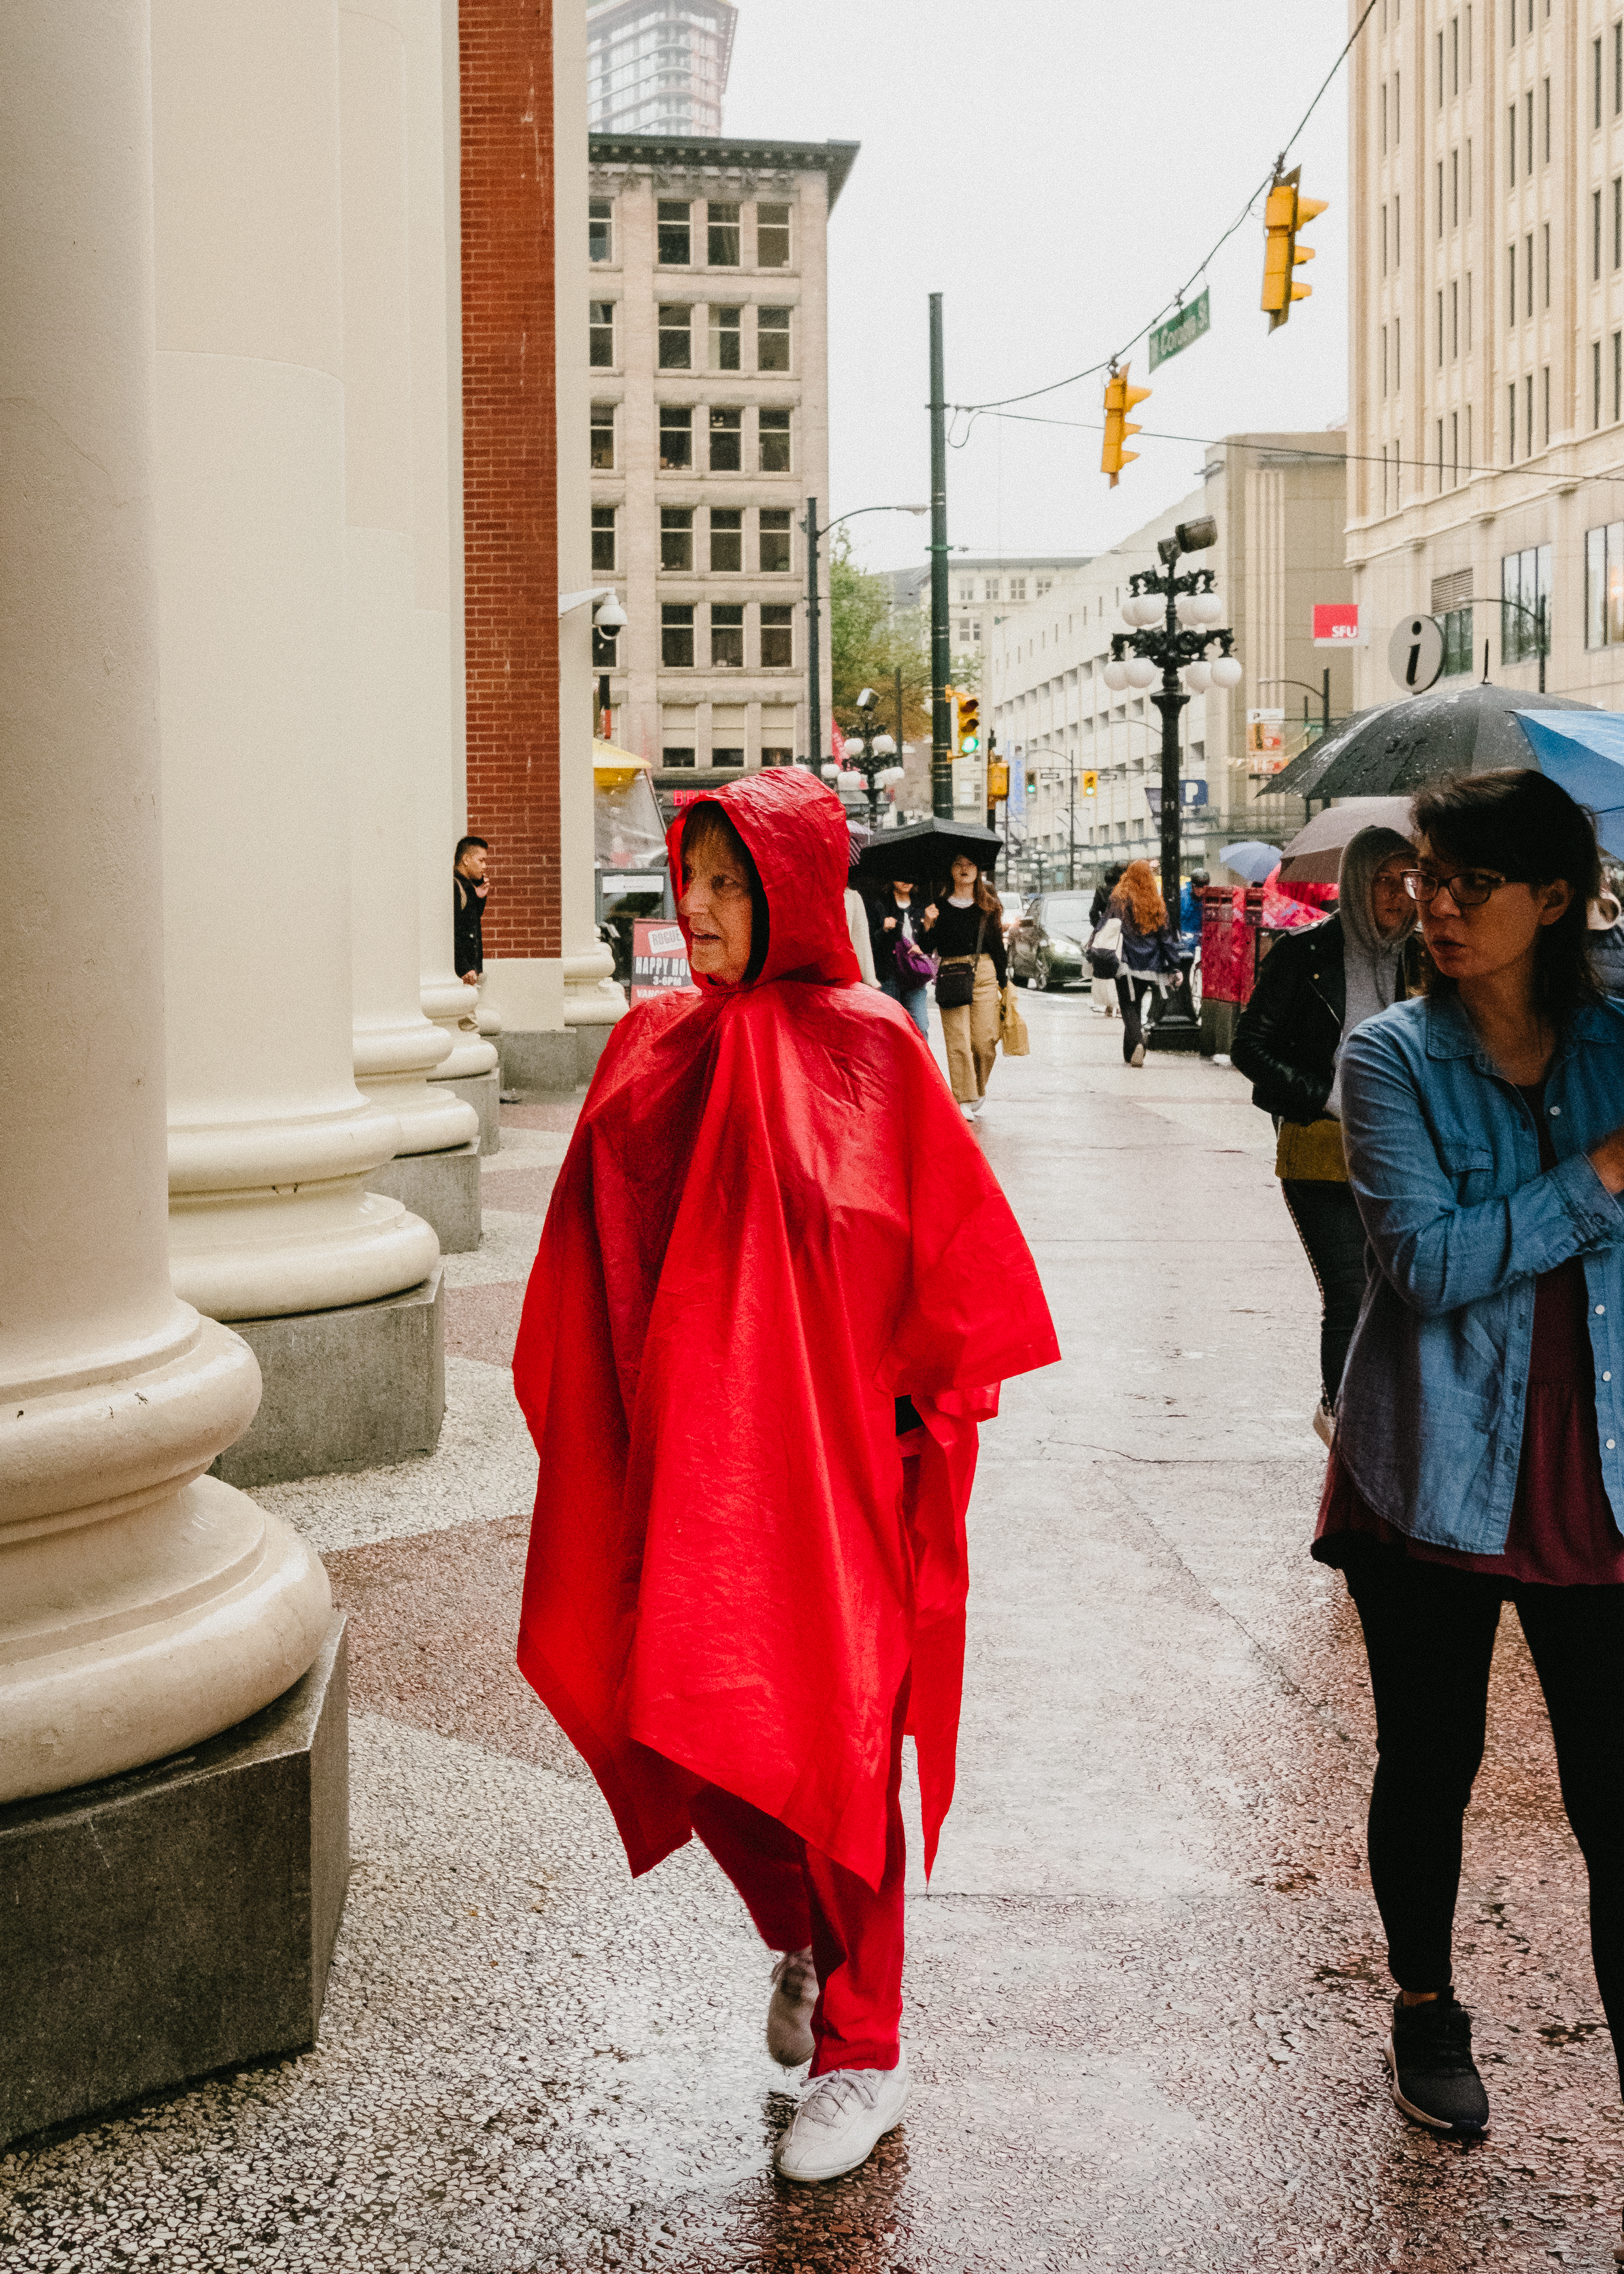 Vancouver_streetphotography_august-21.jpg